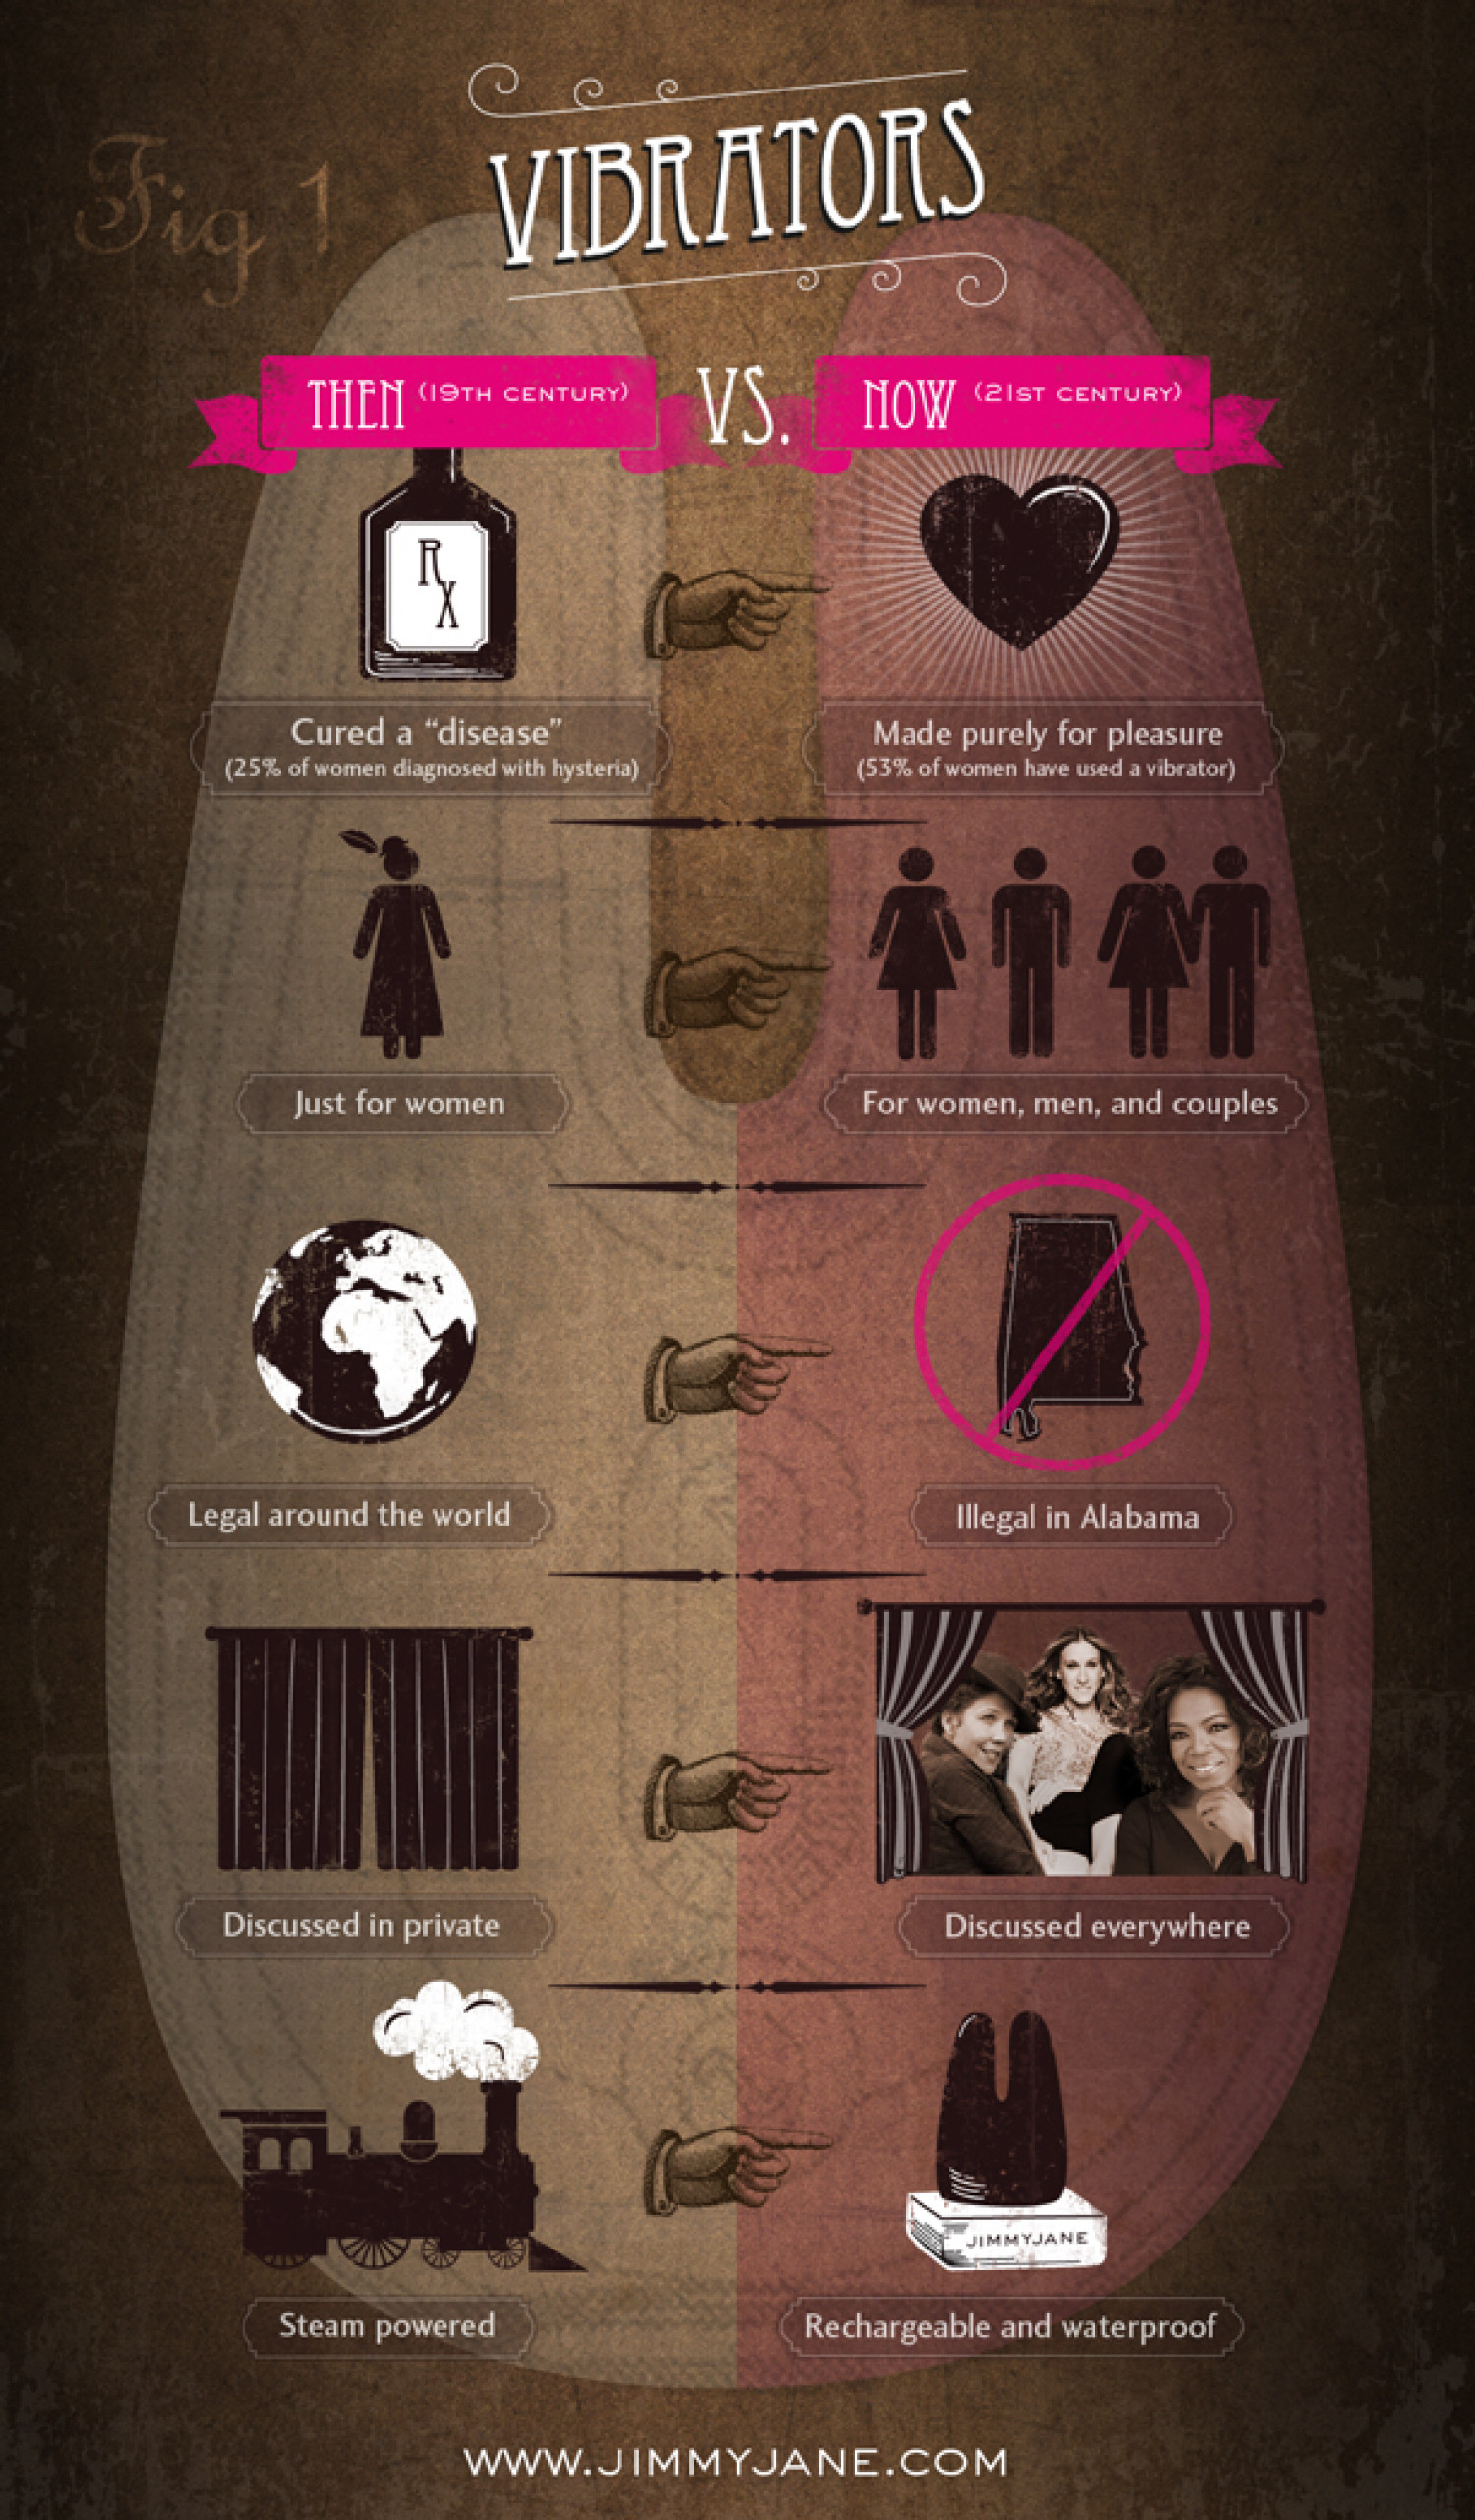 The History of Vibrators by Jimmyjane Infographic